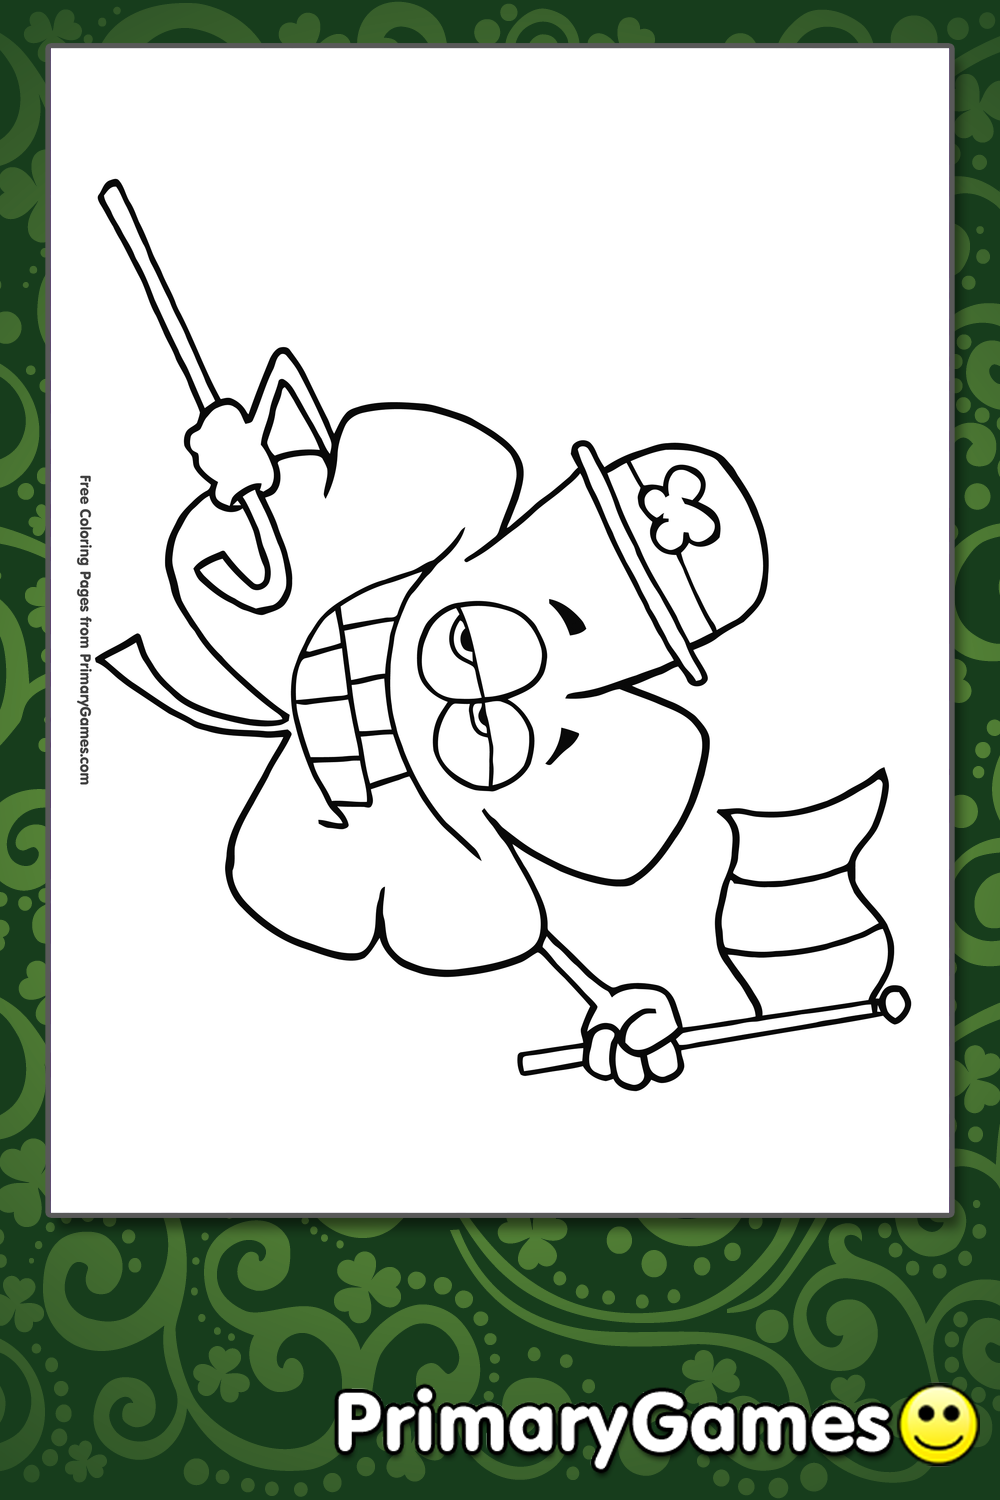 st patrick s day coloring pages pdf - shamrock with irish flag coloring page printable st